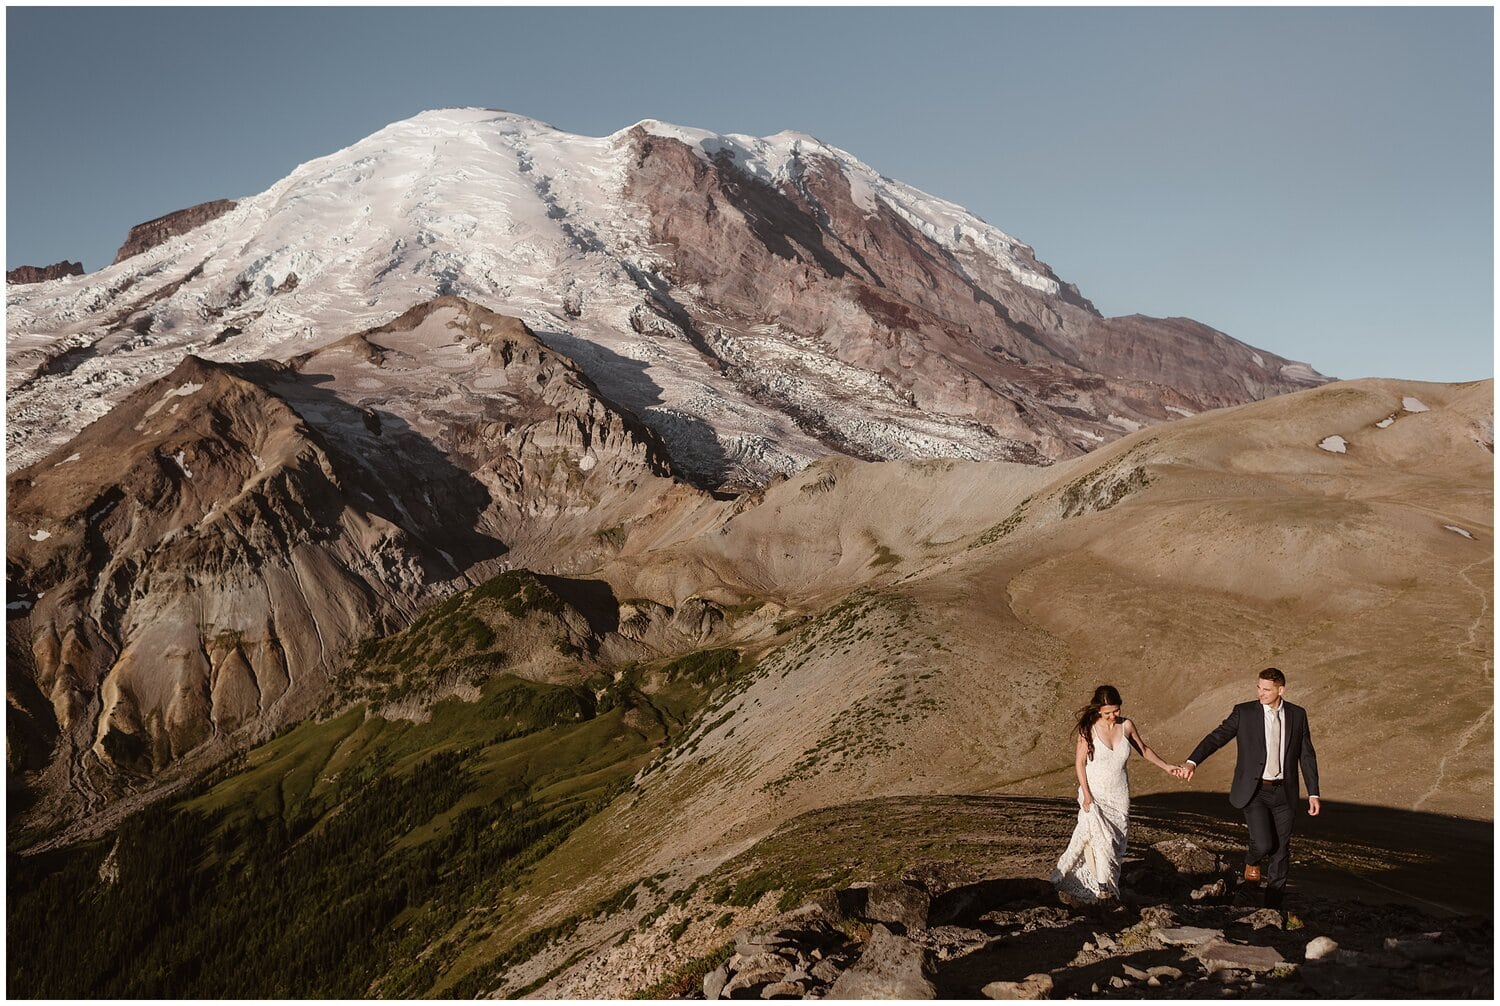 A bride and groom walk in the mountains on their wedding day.